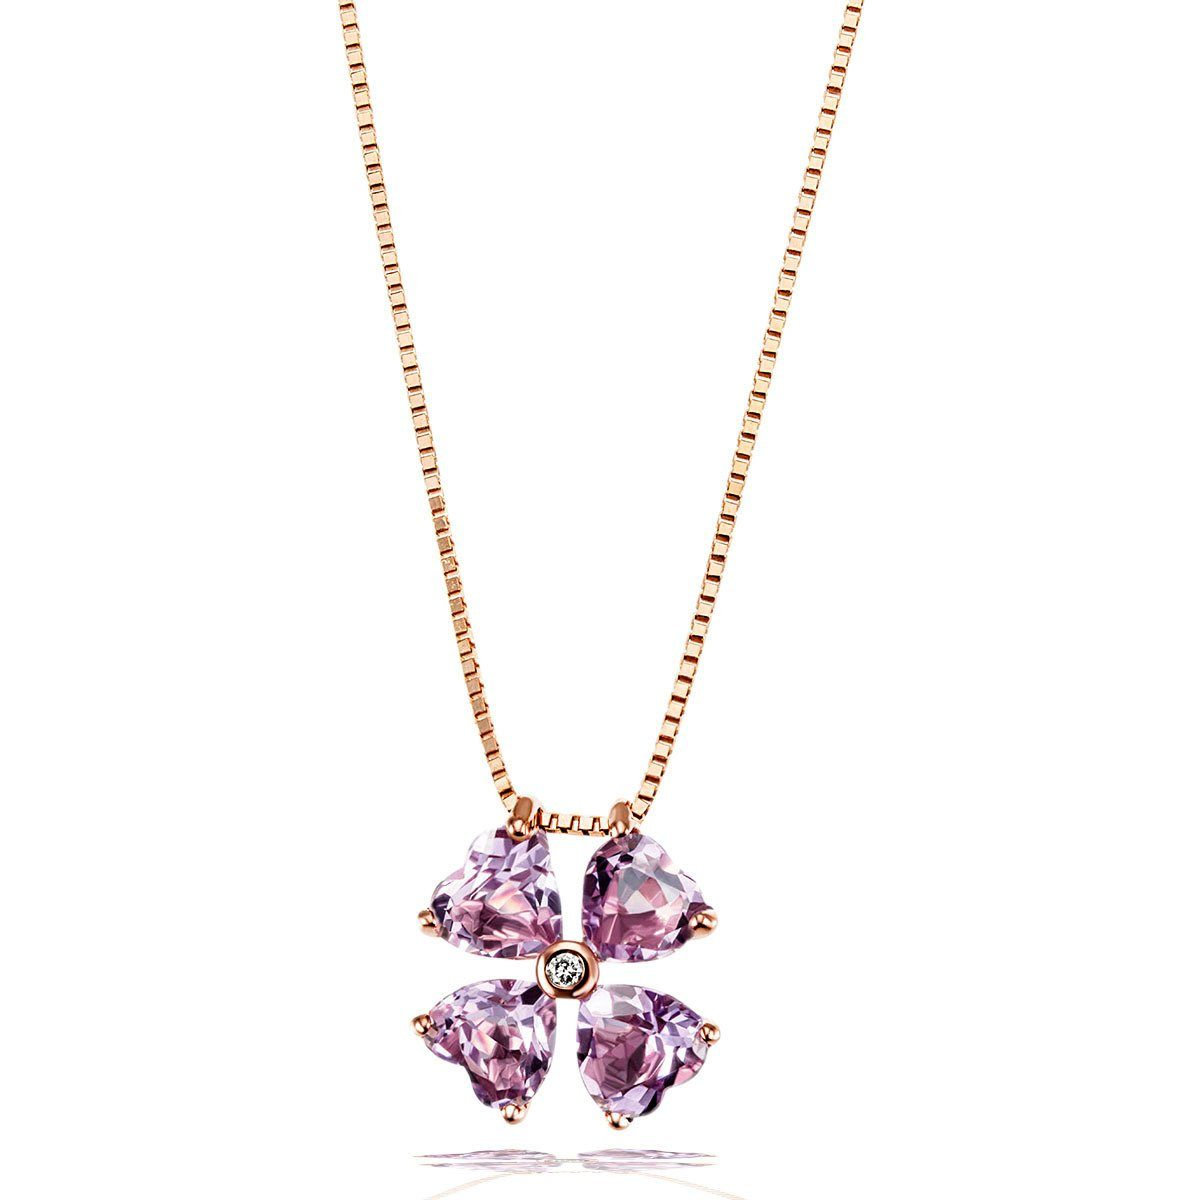 goldmaid Collier 375/- Rotgold 4 Amethysten 1 Brillant P1 0,02 ct.